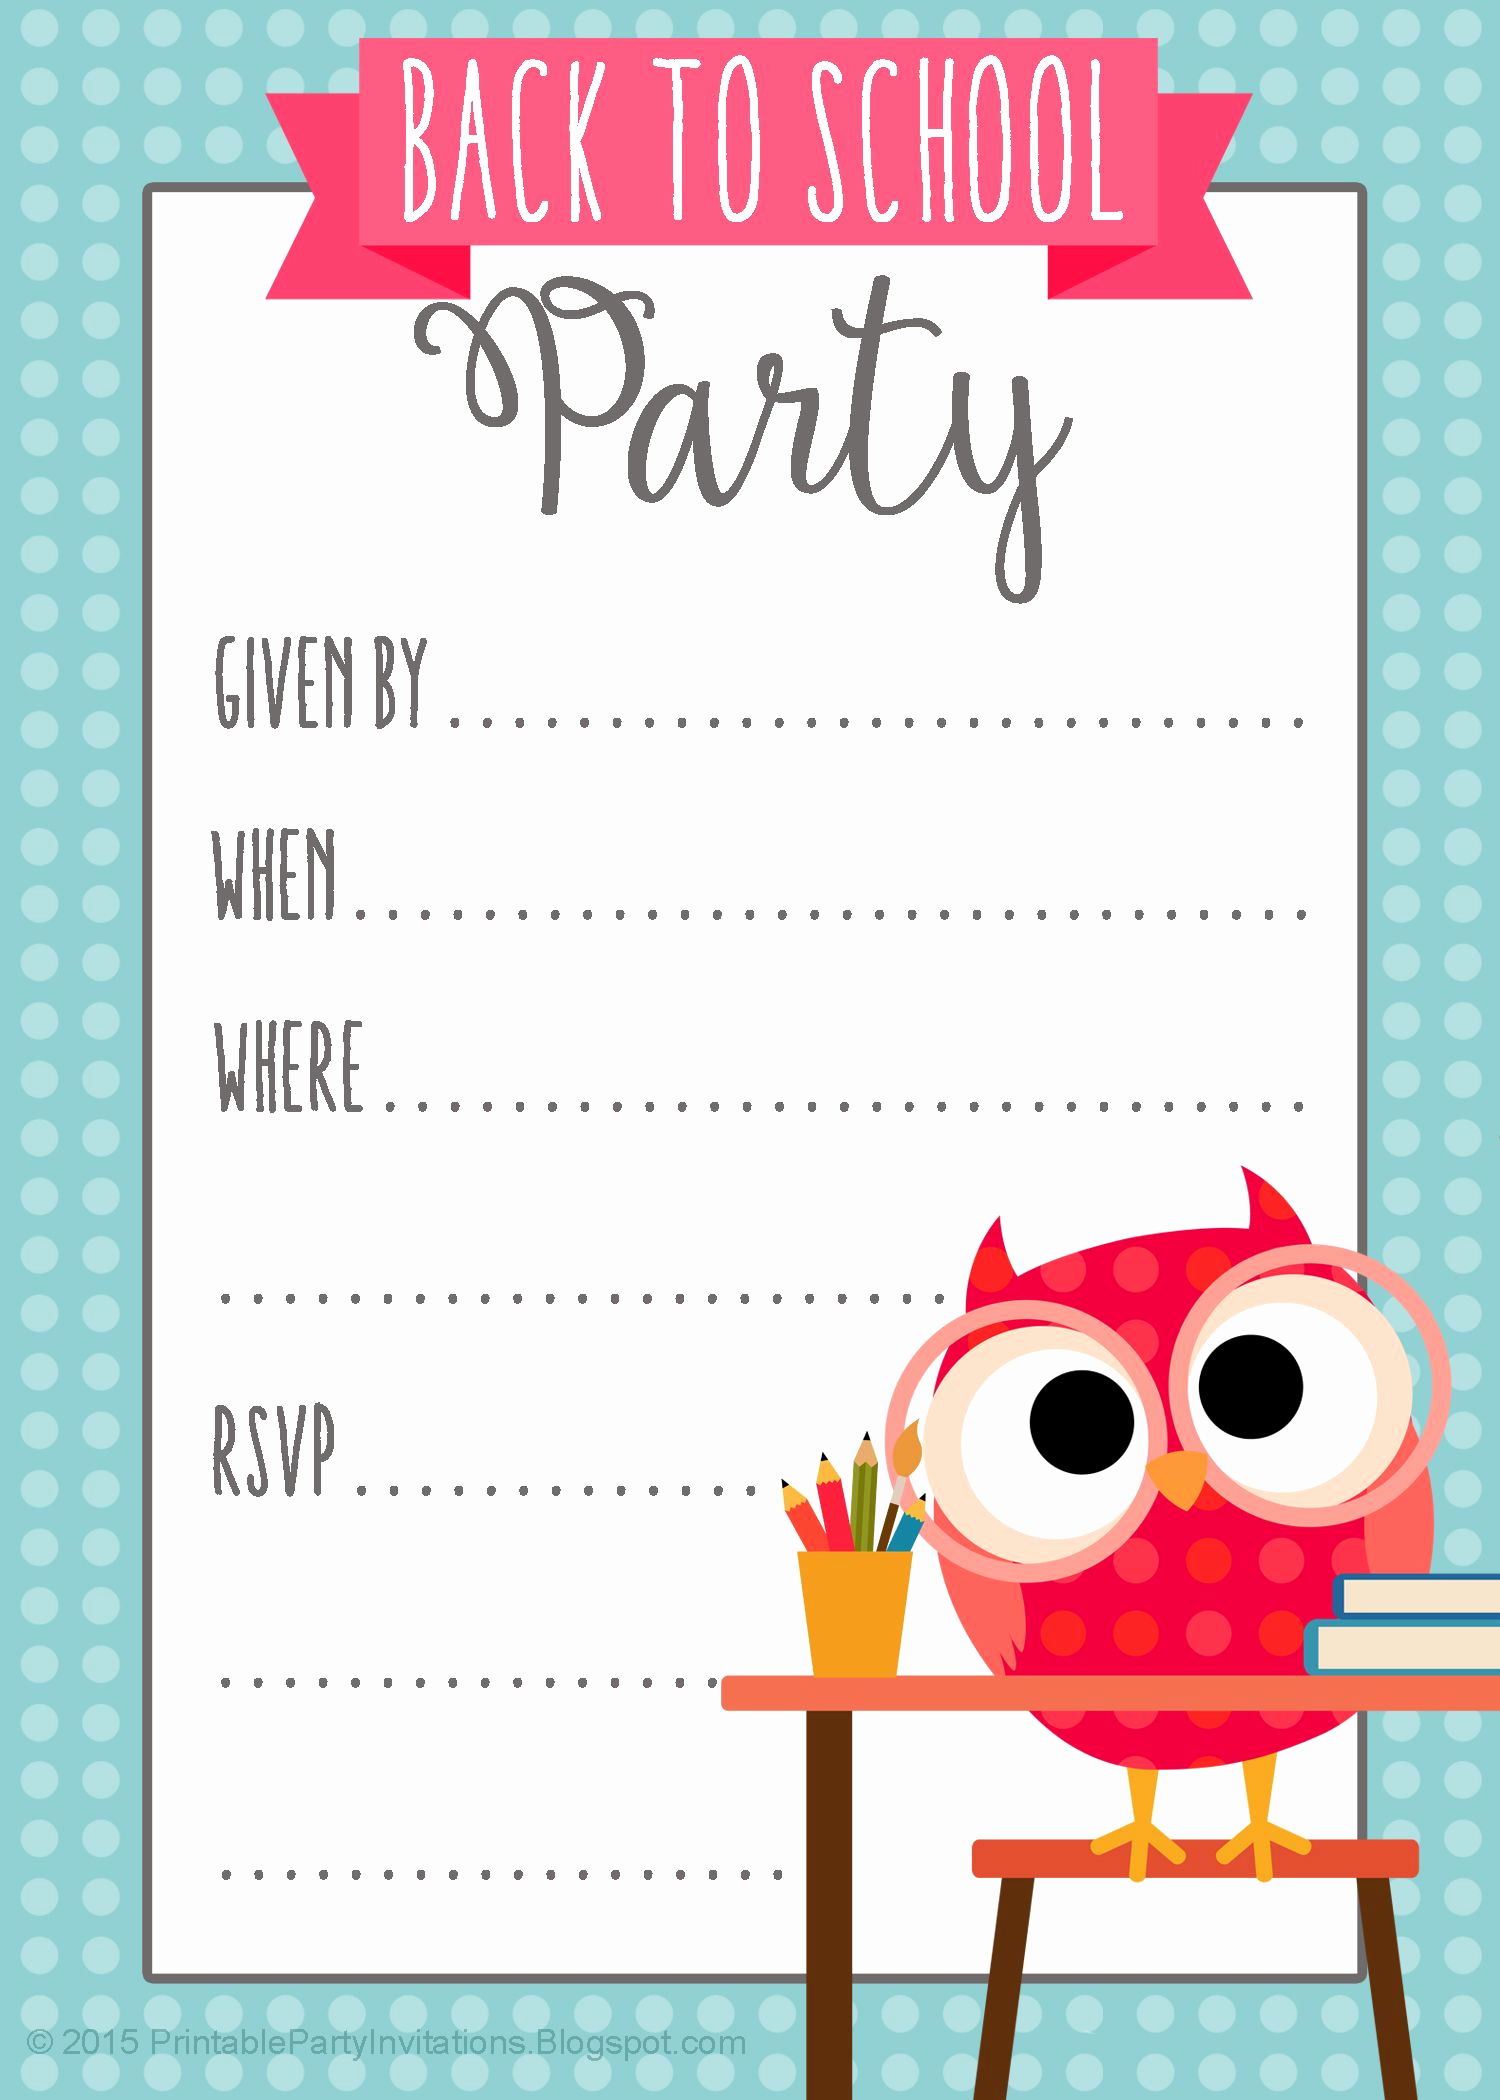 Back to School Invitation Inspirational Free Printable Back to School Party Invitation